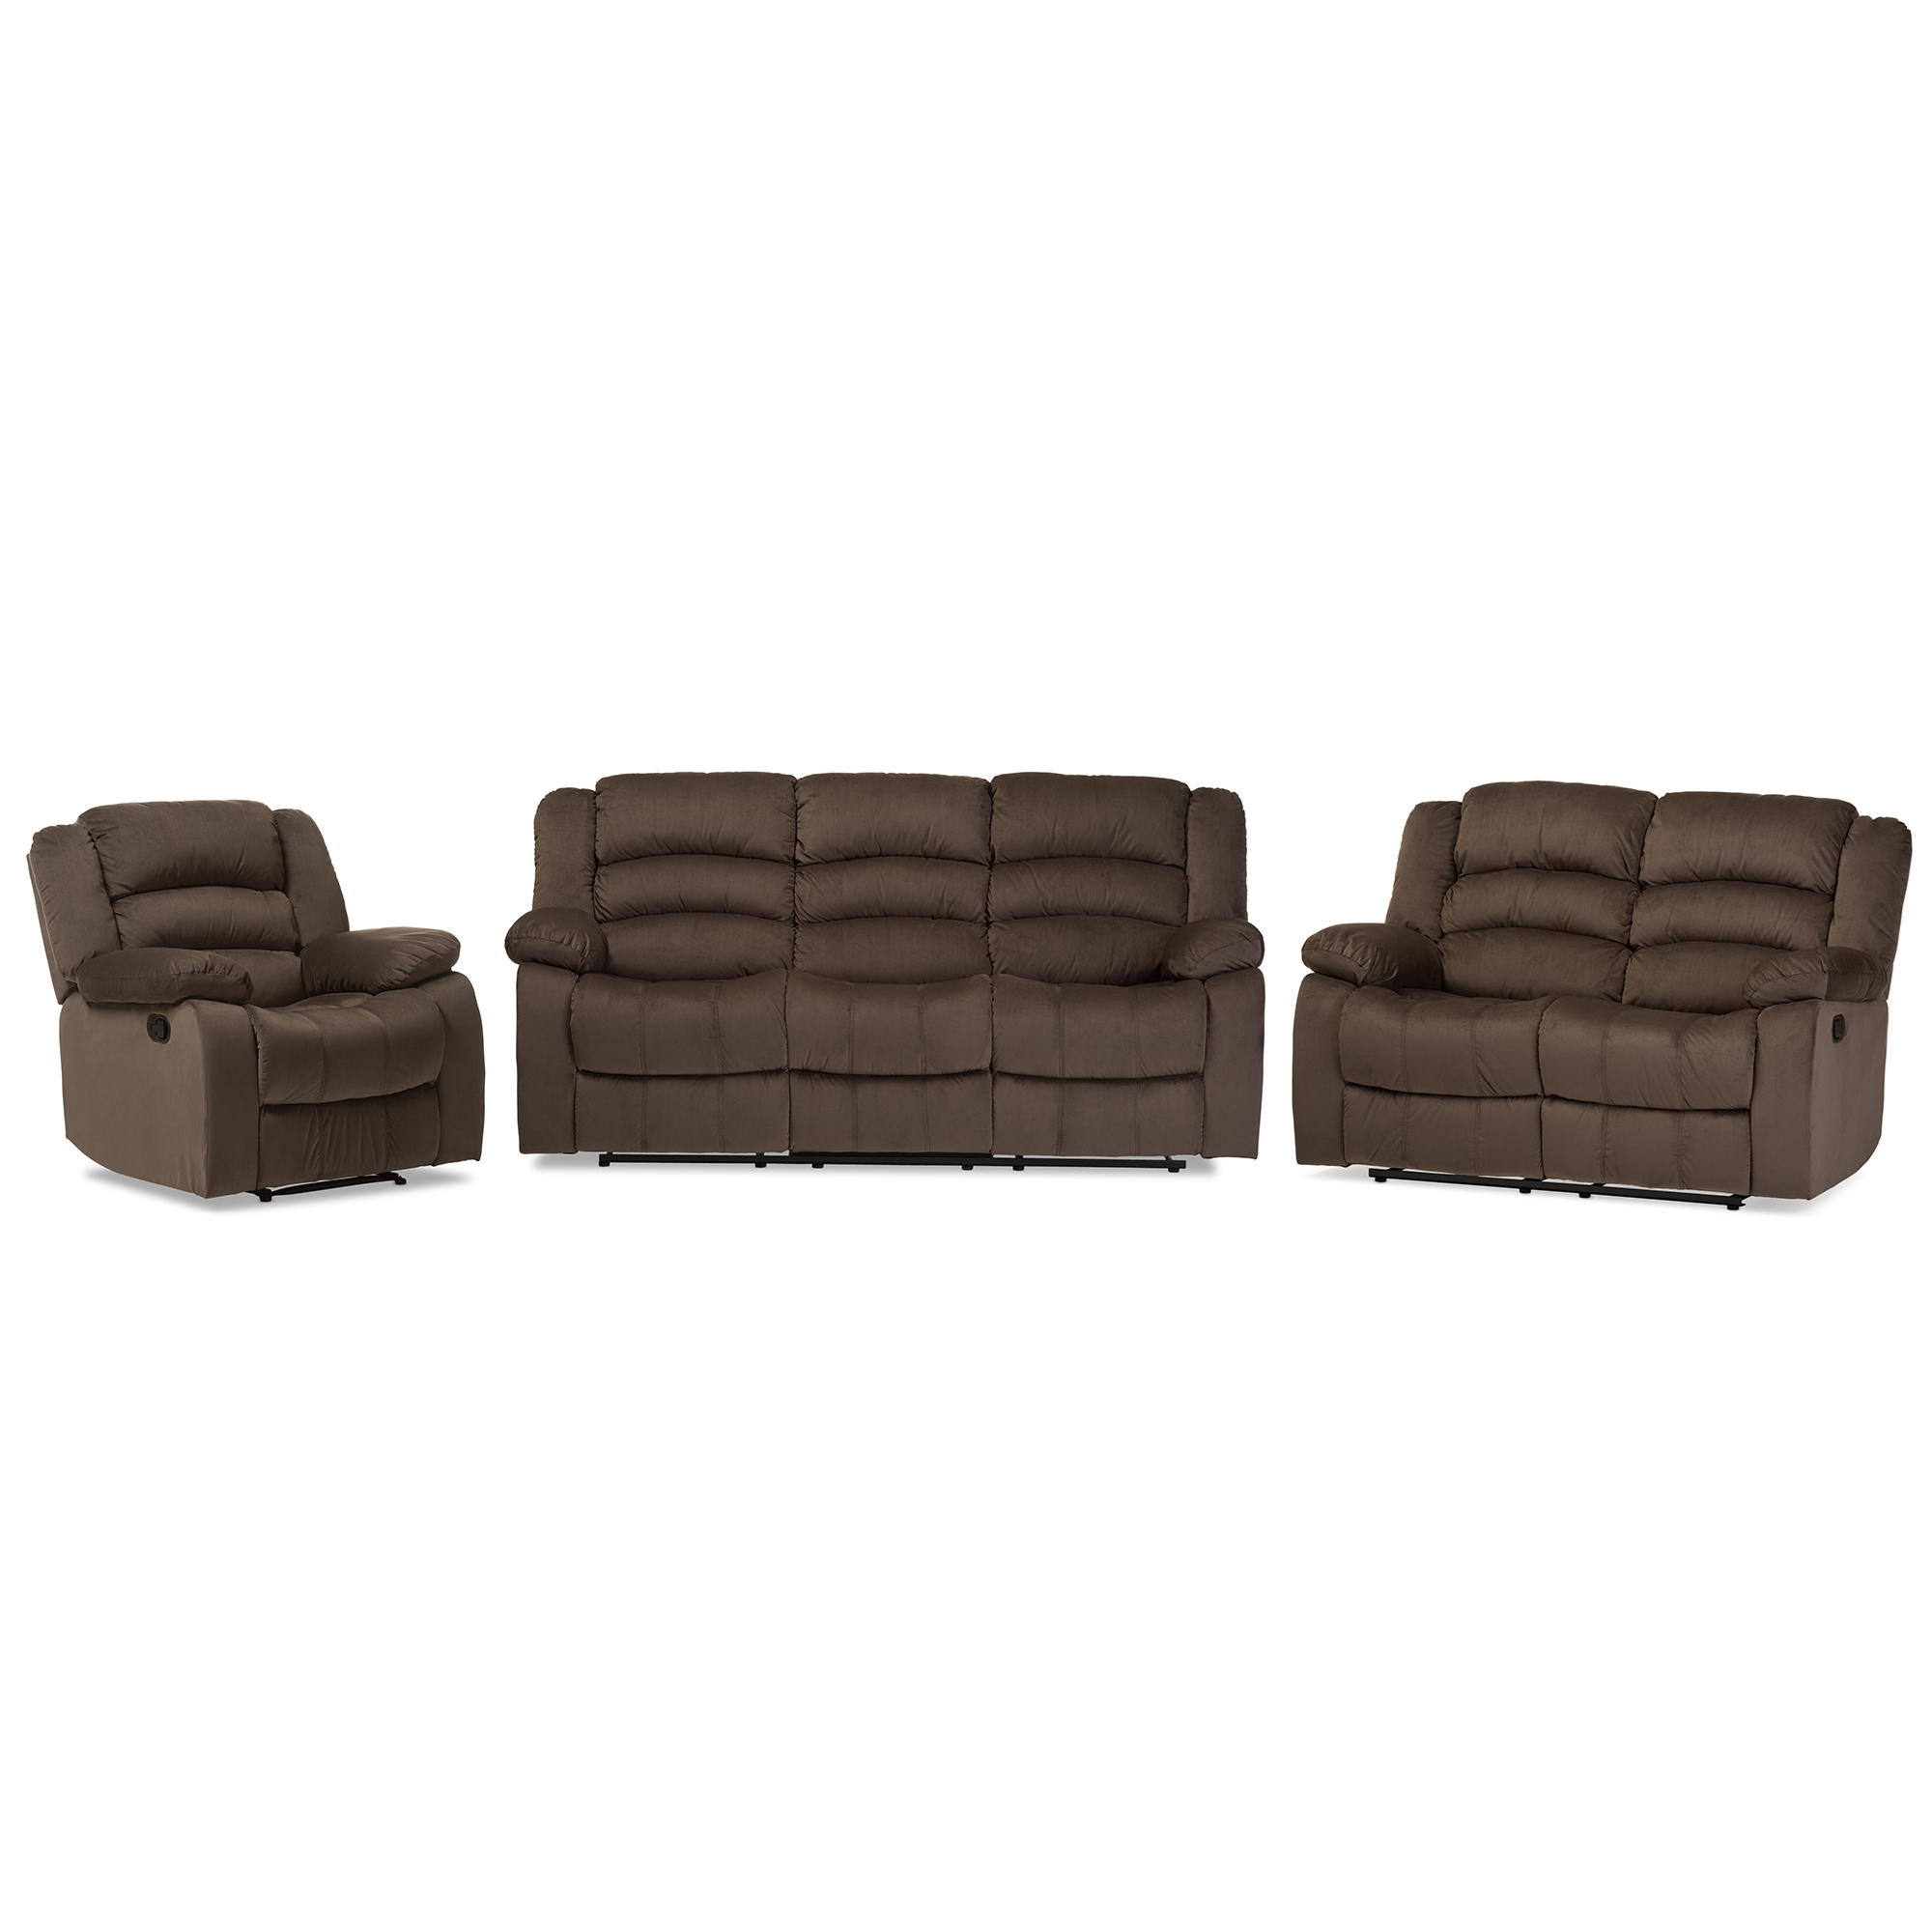 Baxton Studio Hollace Modern And Contemporary Taupe Microsuede Sofa Loveseat Chair Set With 5 Recliners Living Room